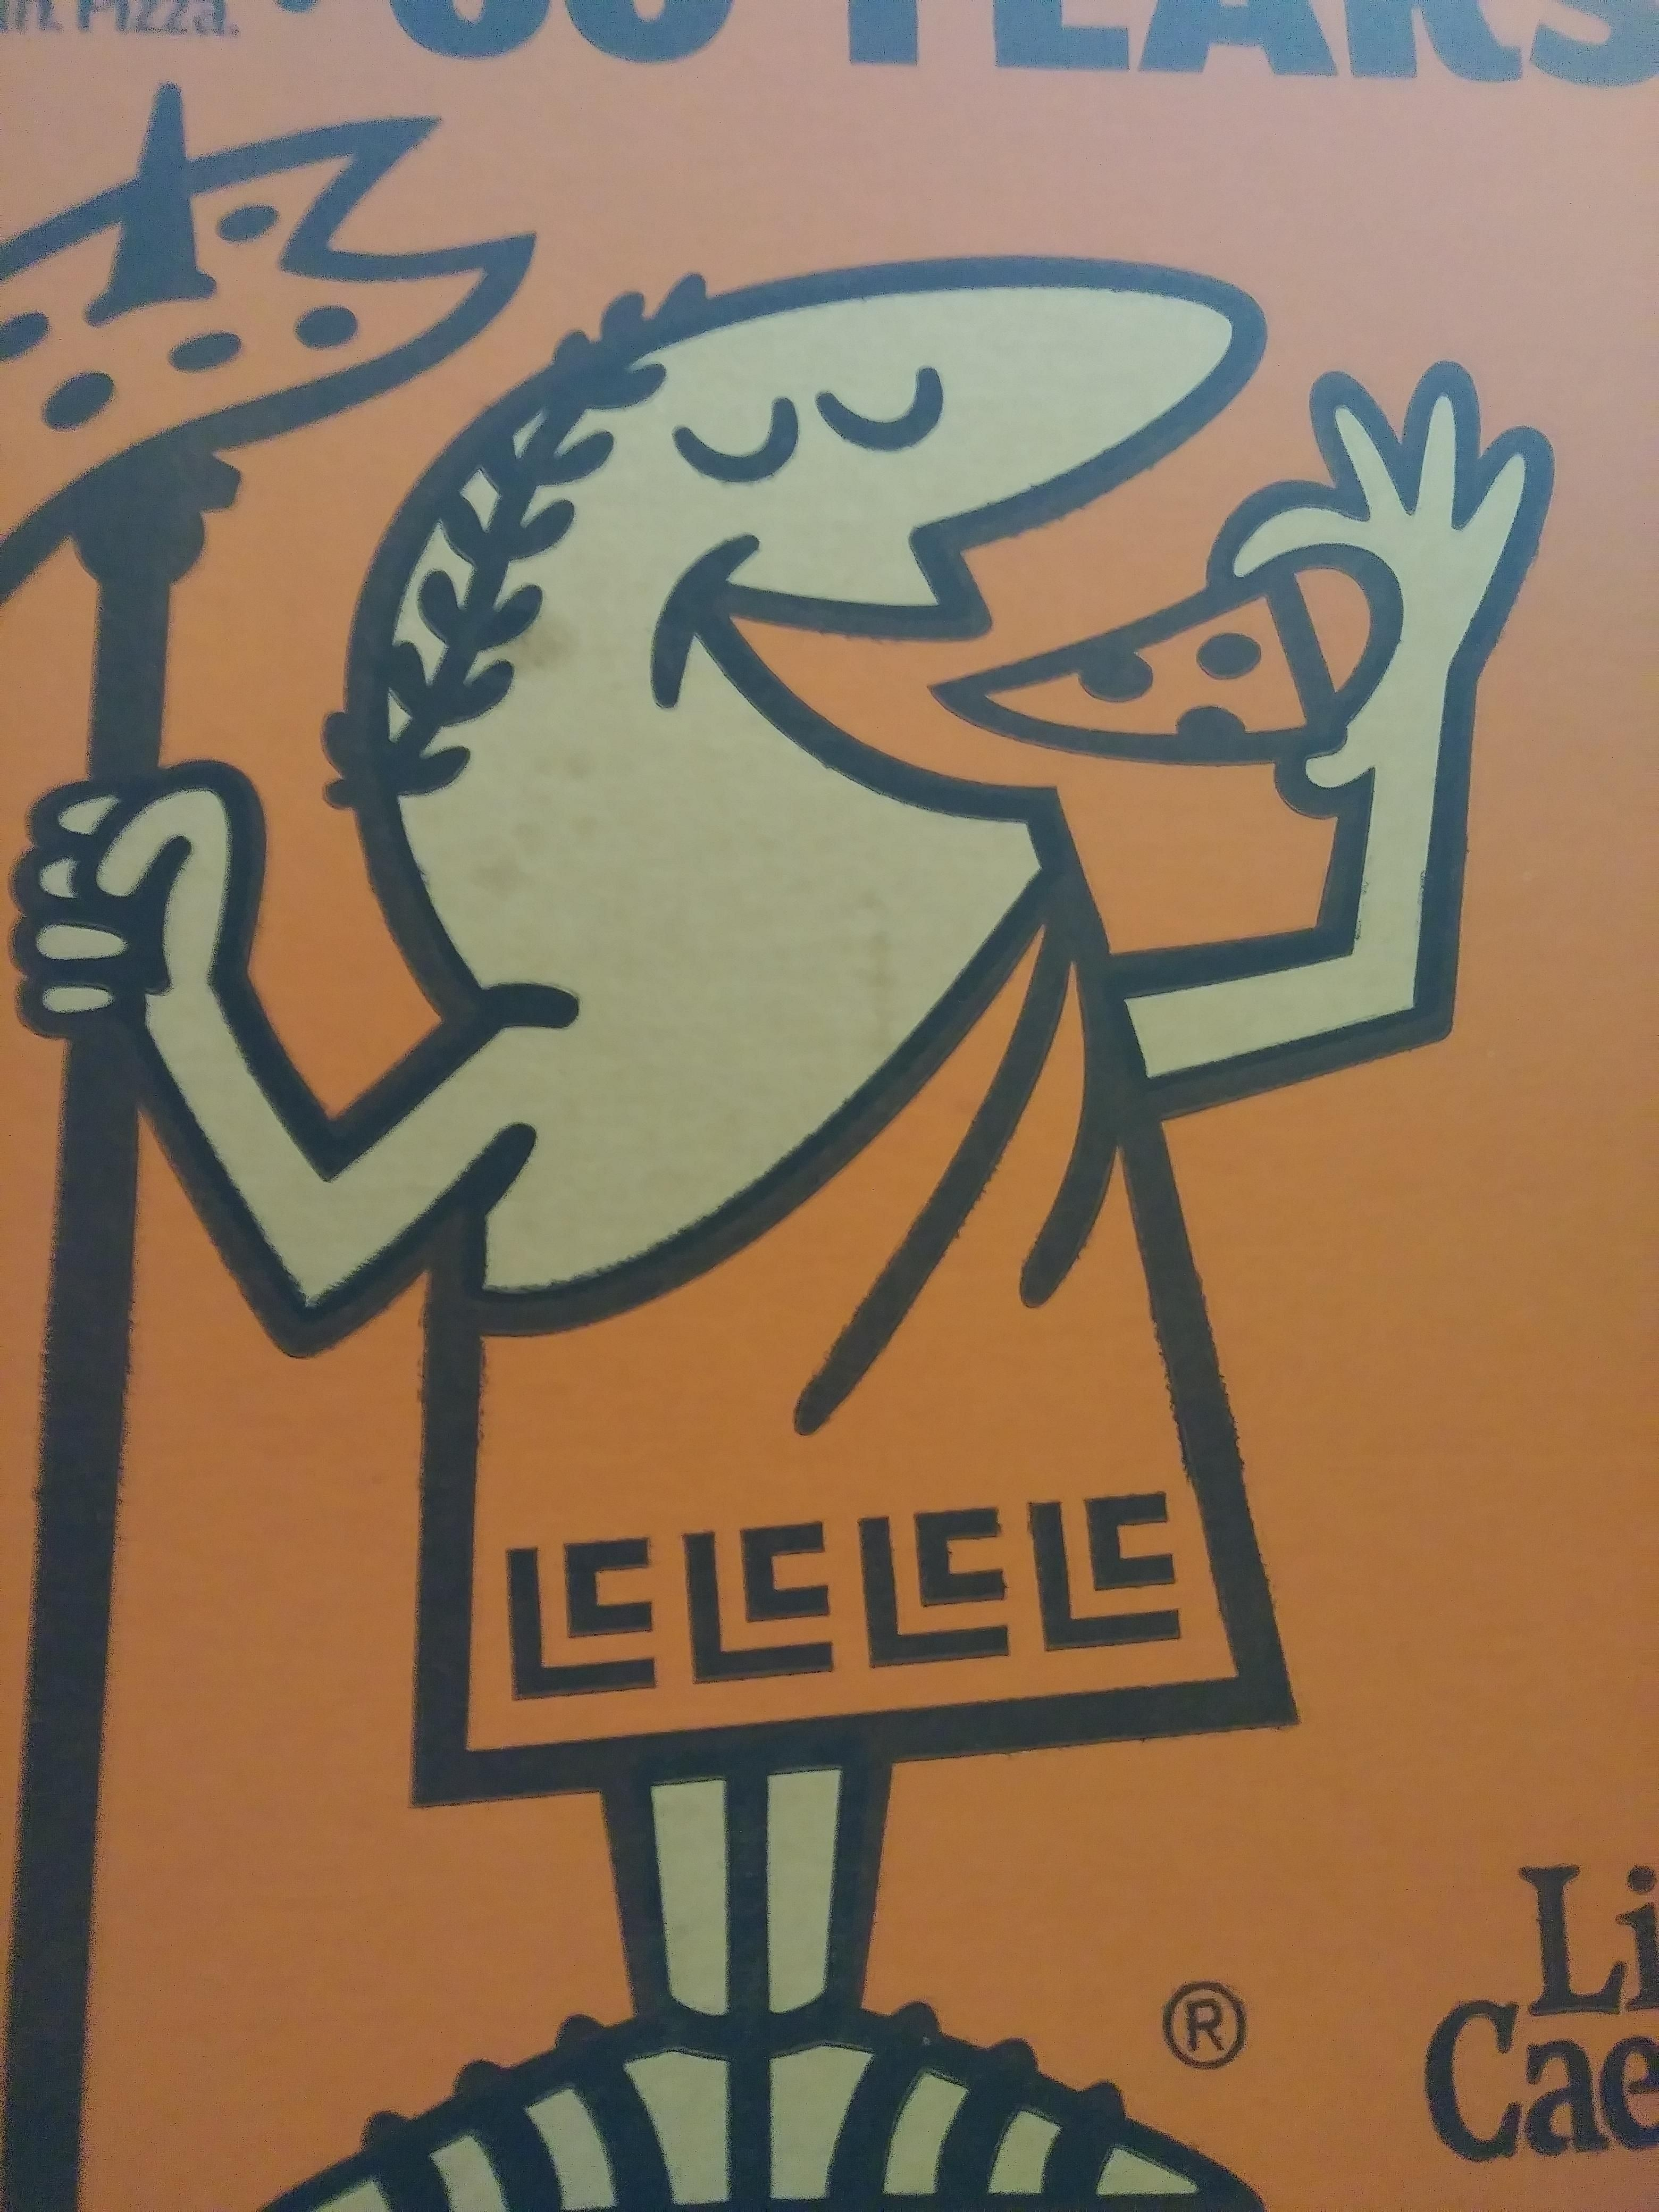 I never noticed the pattern at the bottom of Little Caesar's toga is just his initials.